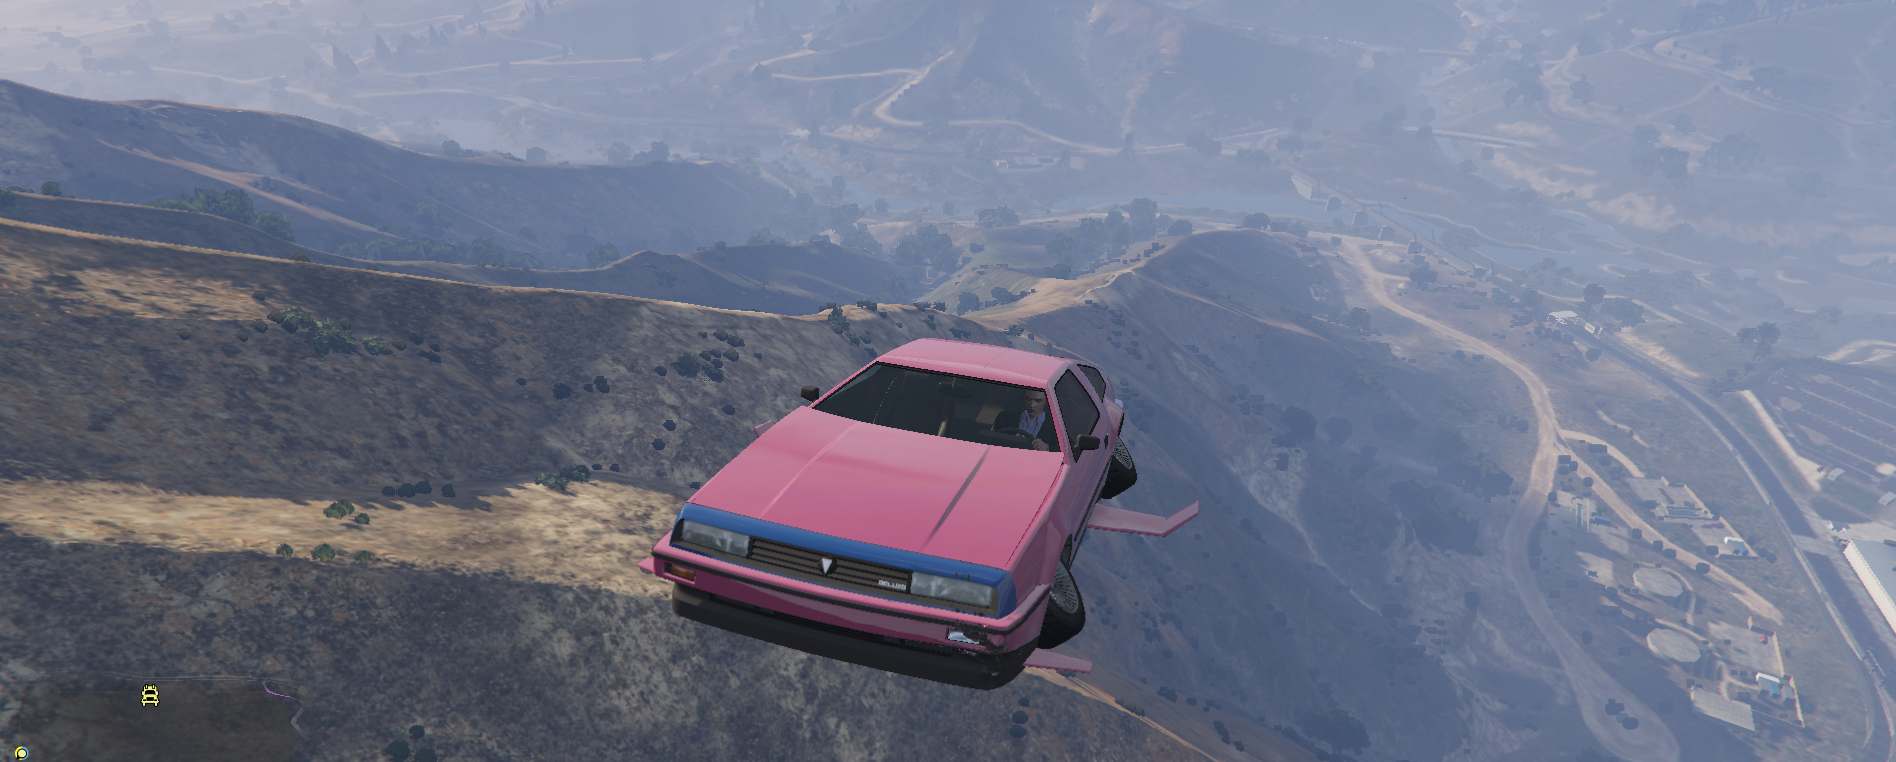 Grand Theft Auto Online - a pink Deluxo takes to the skies over mountains